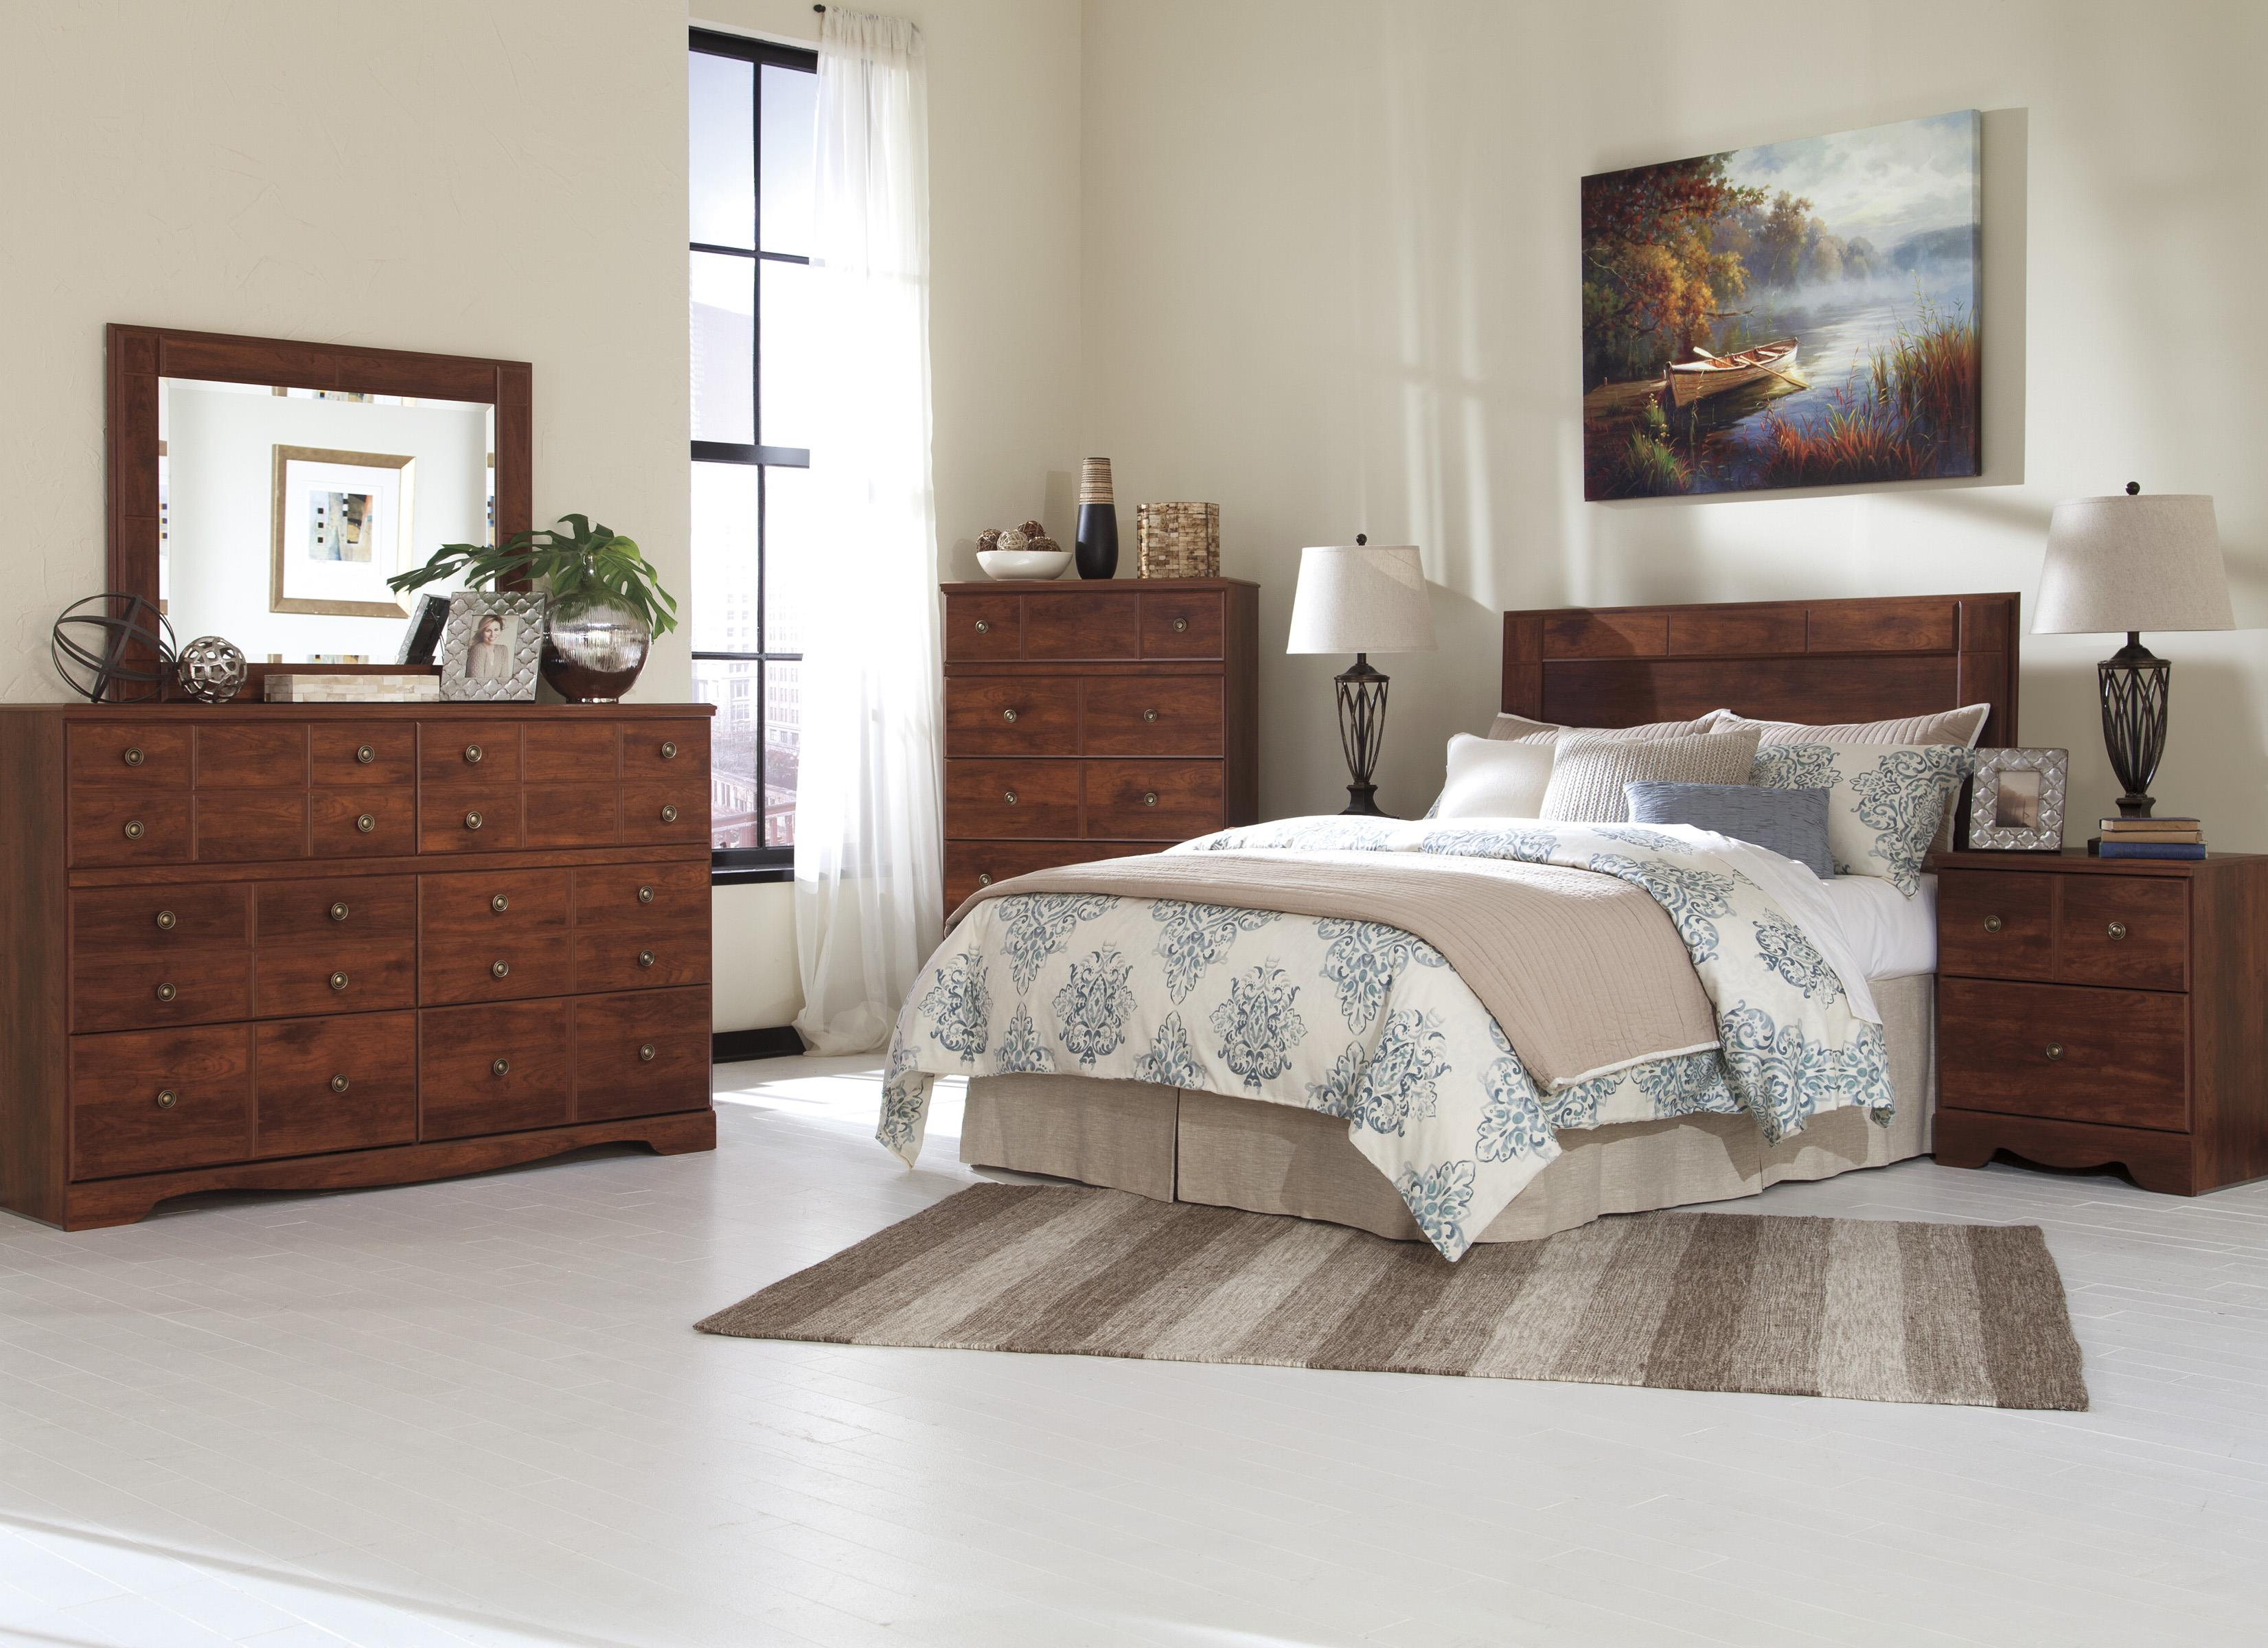 Signature Design by Ashley Brittberg Queen/Full Bedroom Group - Item Number: B265 QF Bedroom Group 2